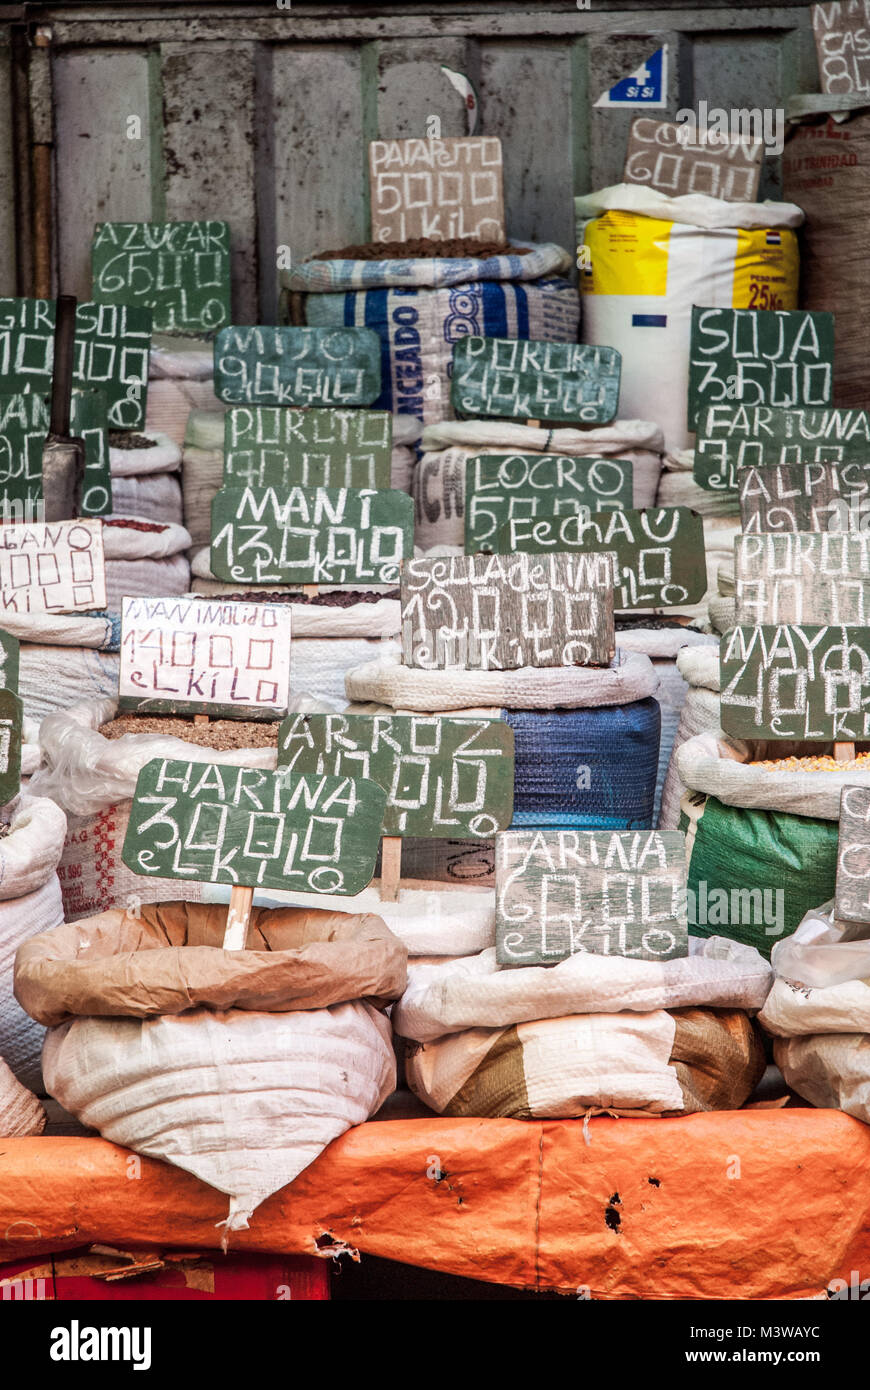 Sacks of nuts and grains, with their names written in chalk, being sold at a market - Stock Image